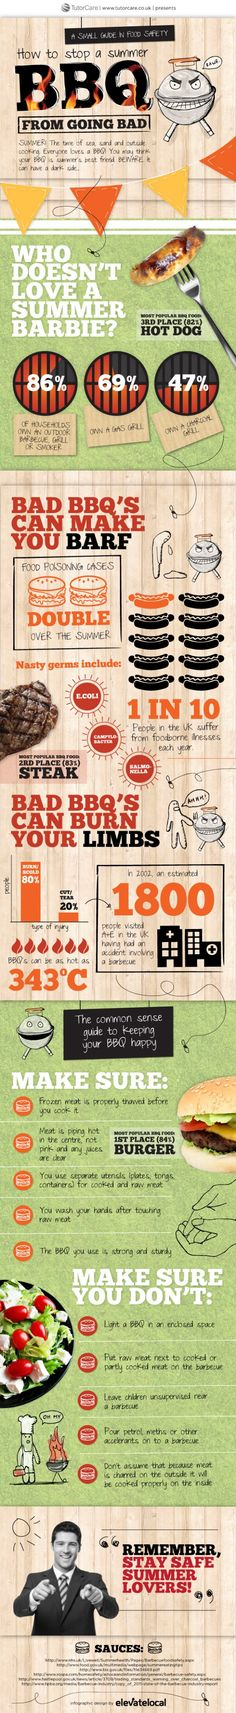 bbq food safety how to stop a summer bbq from going bad infographic